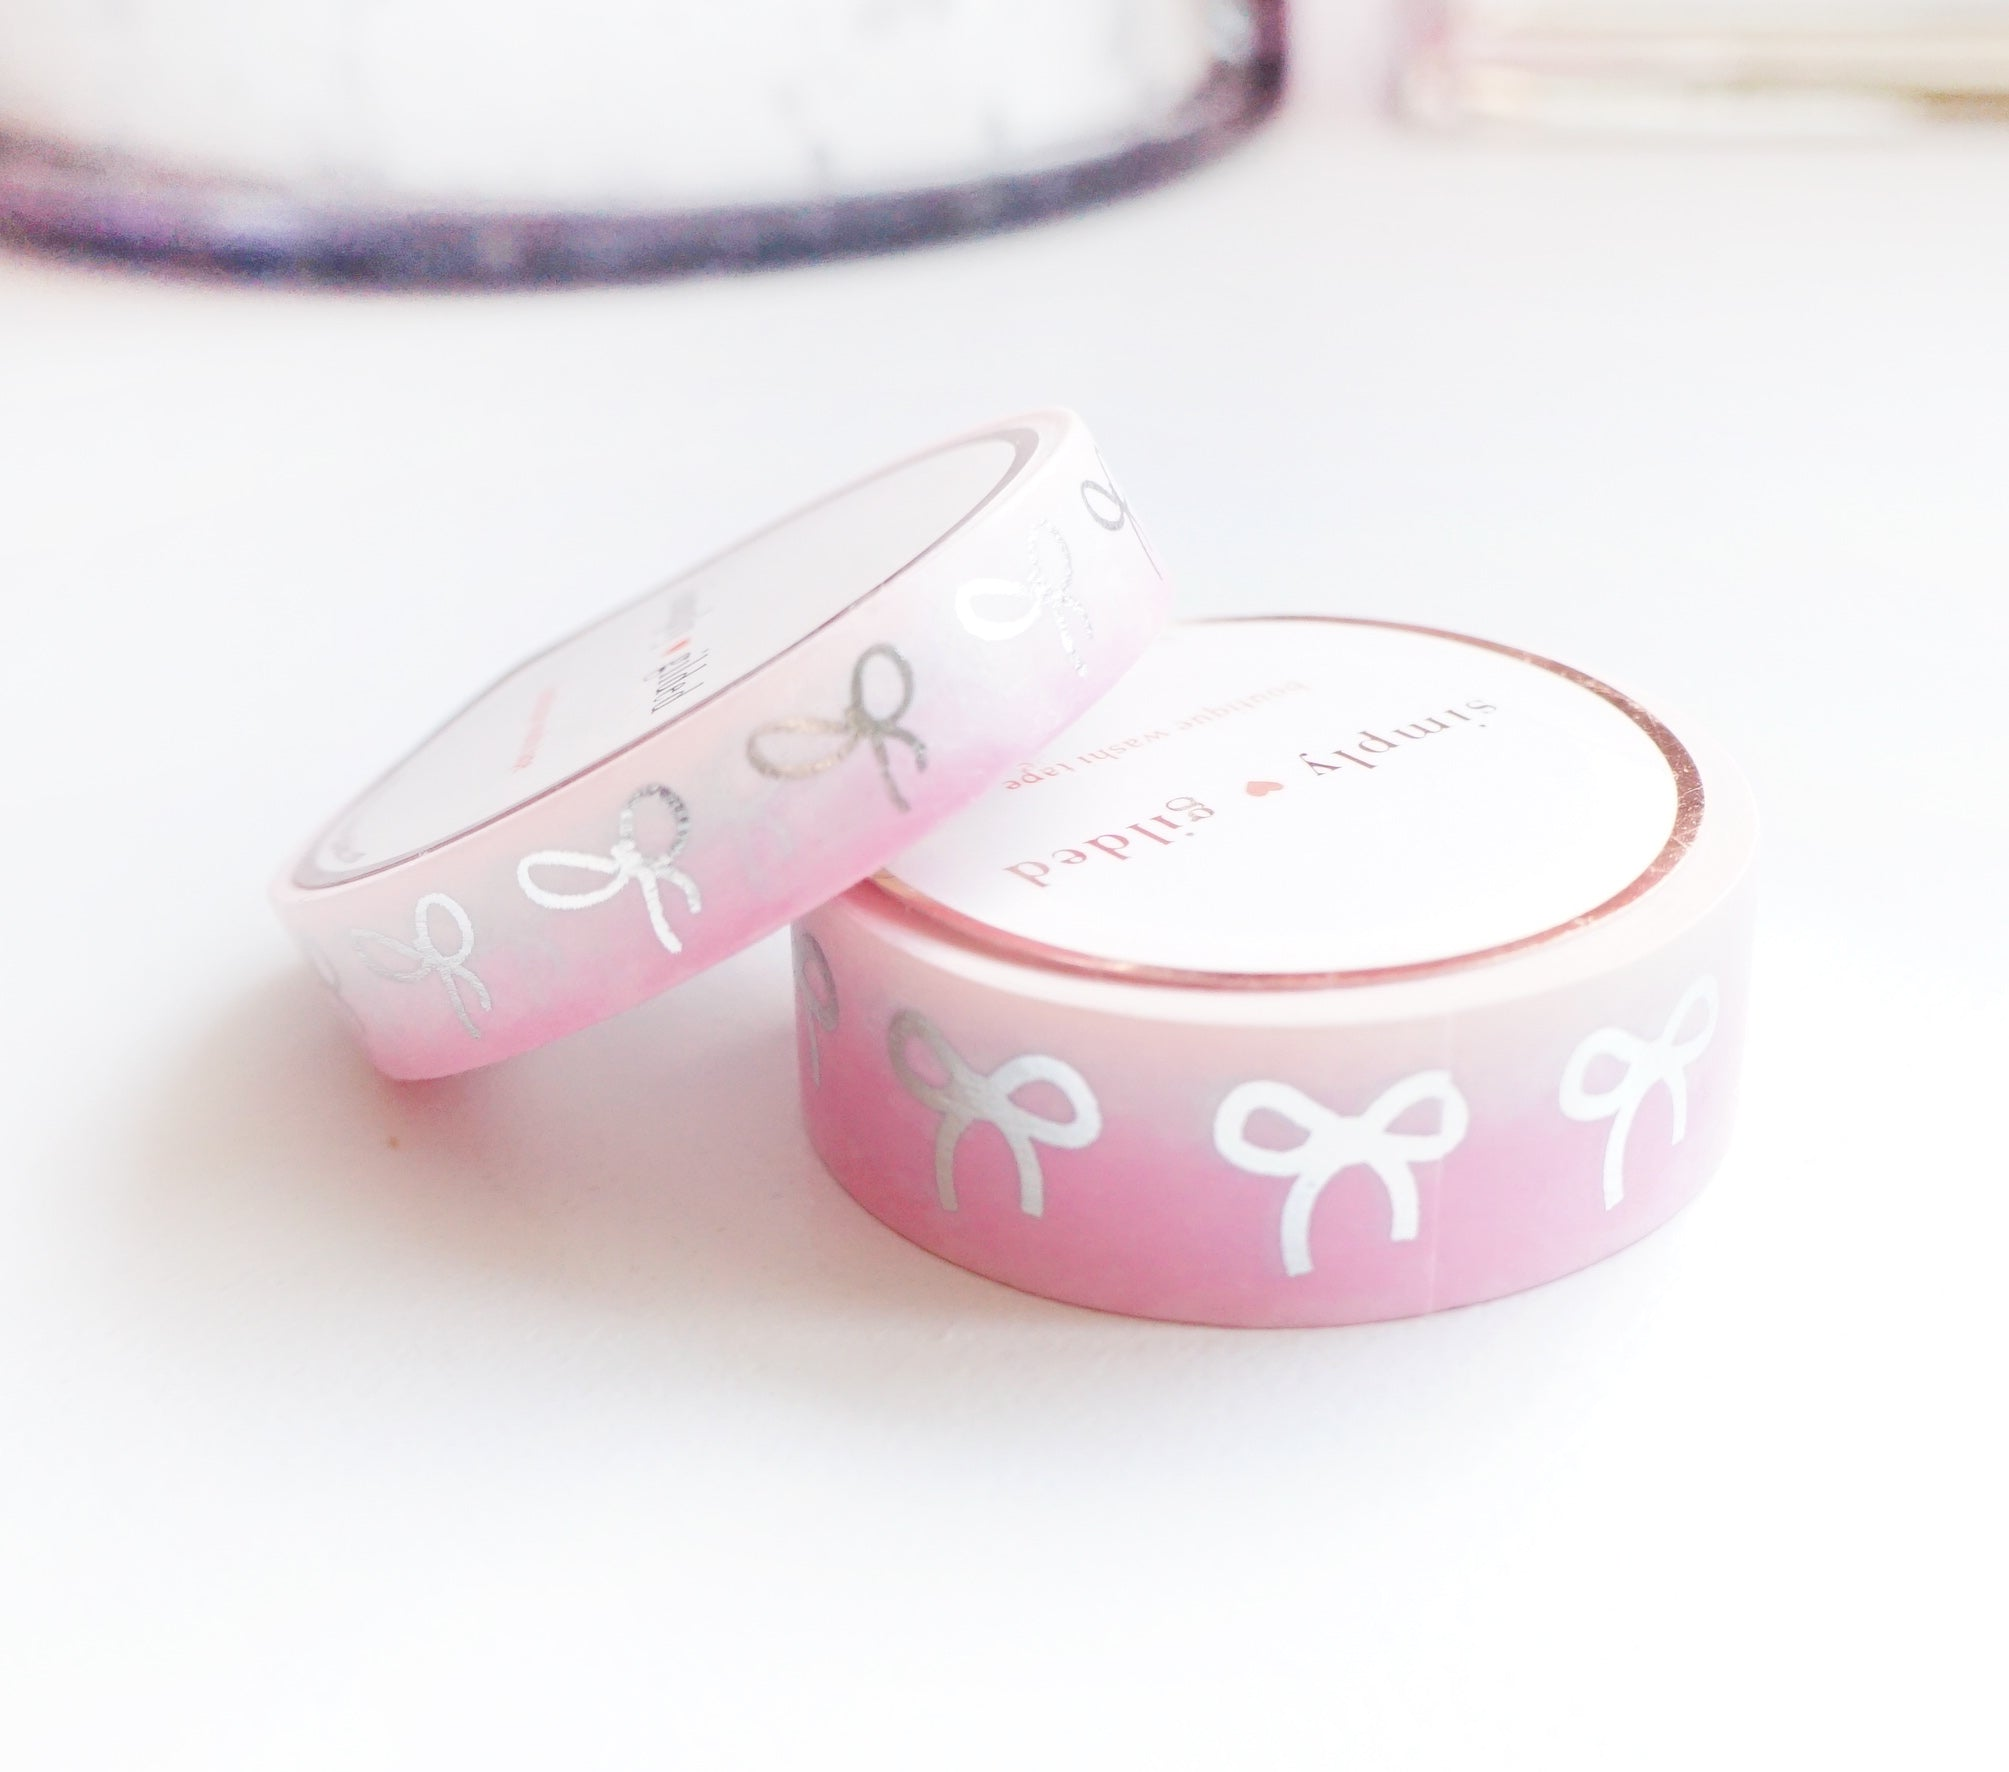 WASHI TAPE 15/10mm BOW set - Valentine's 2020 PINK ON PINK Ombré + SILVER foil (January 31 Mini Release)*